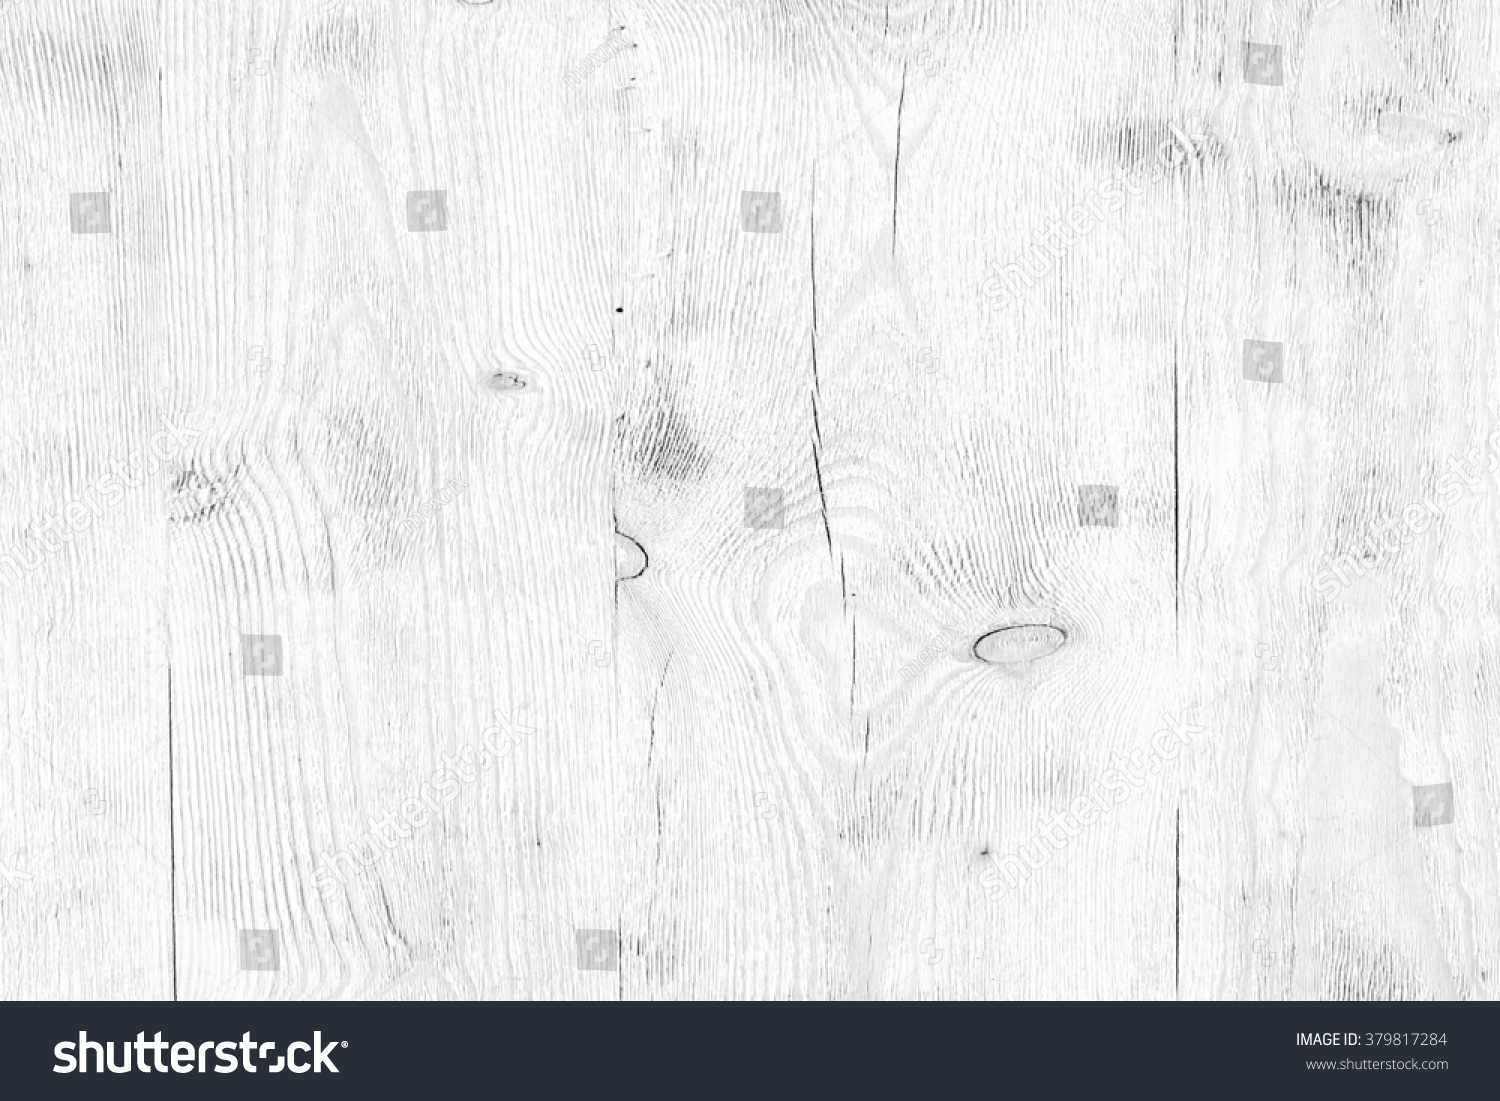 White Soft Wood Surface Background ???????? ?????????? 379817284 - Shutterstock